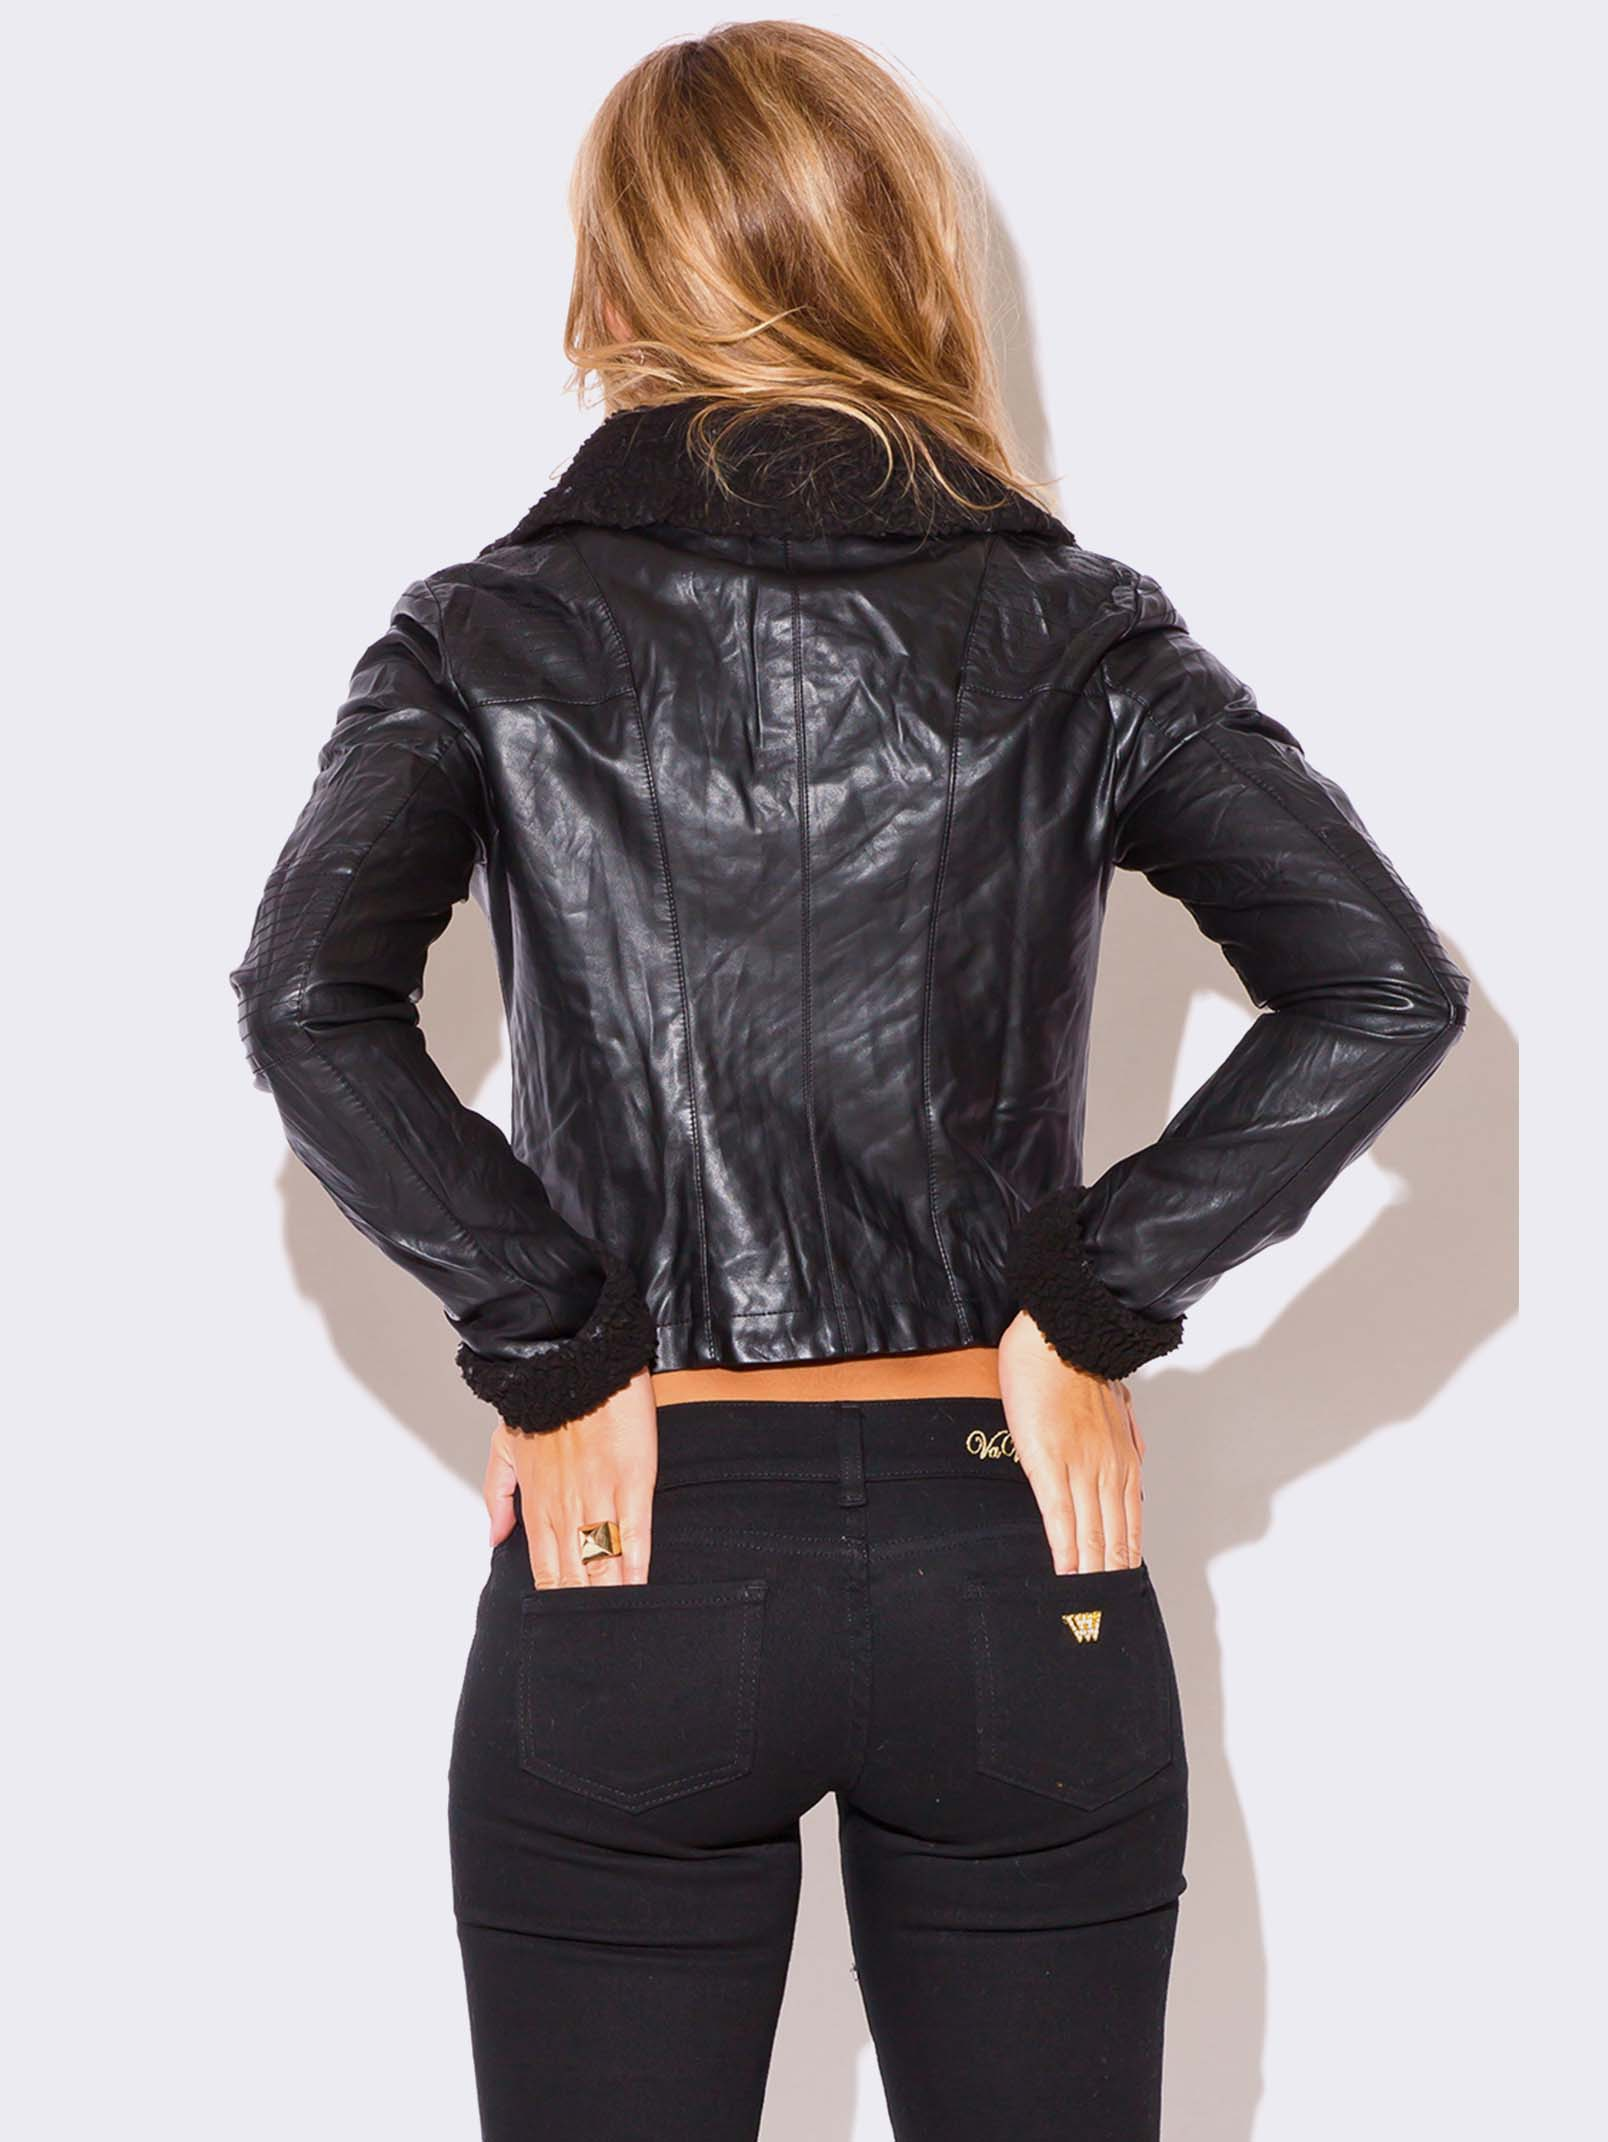 Vegan Leather Biker Jacket Modishonline Com